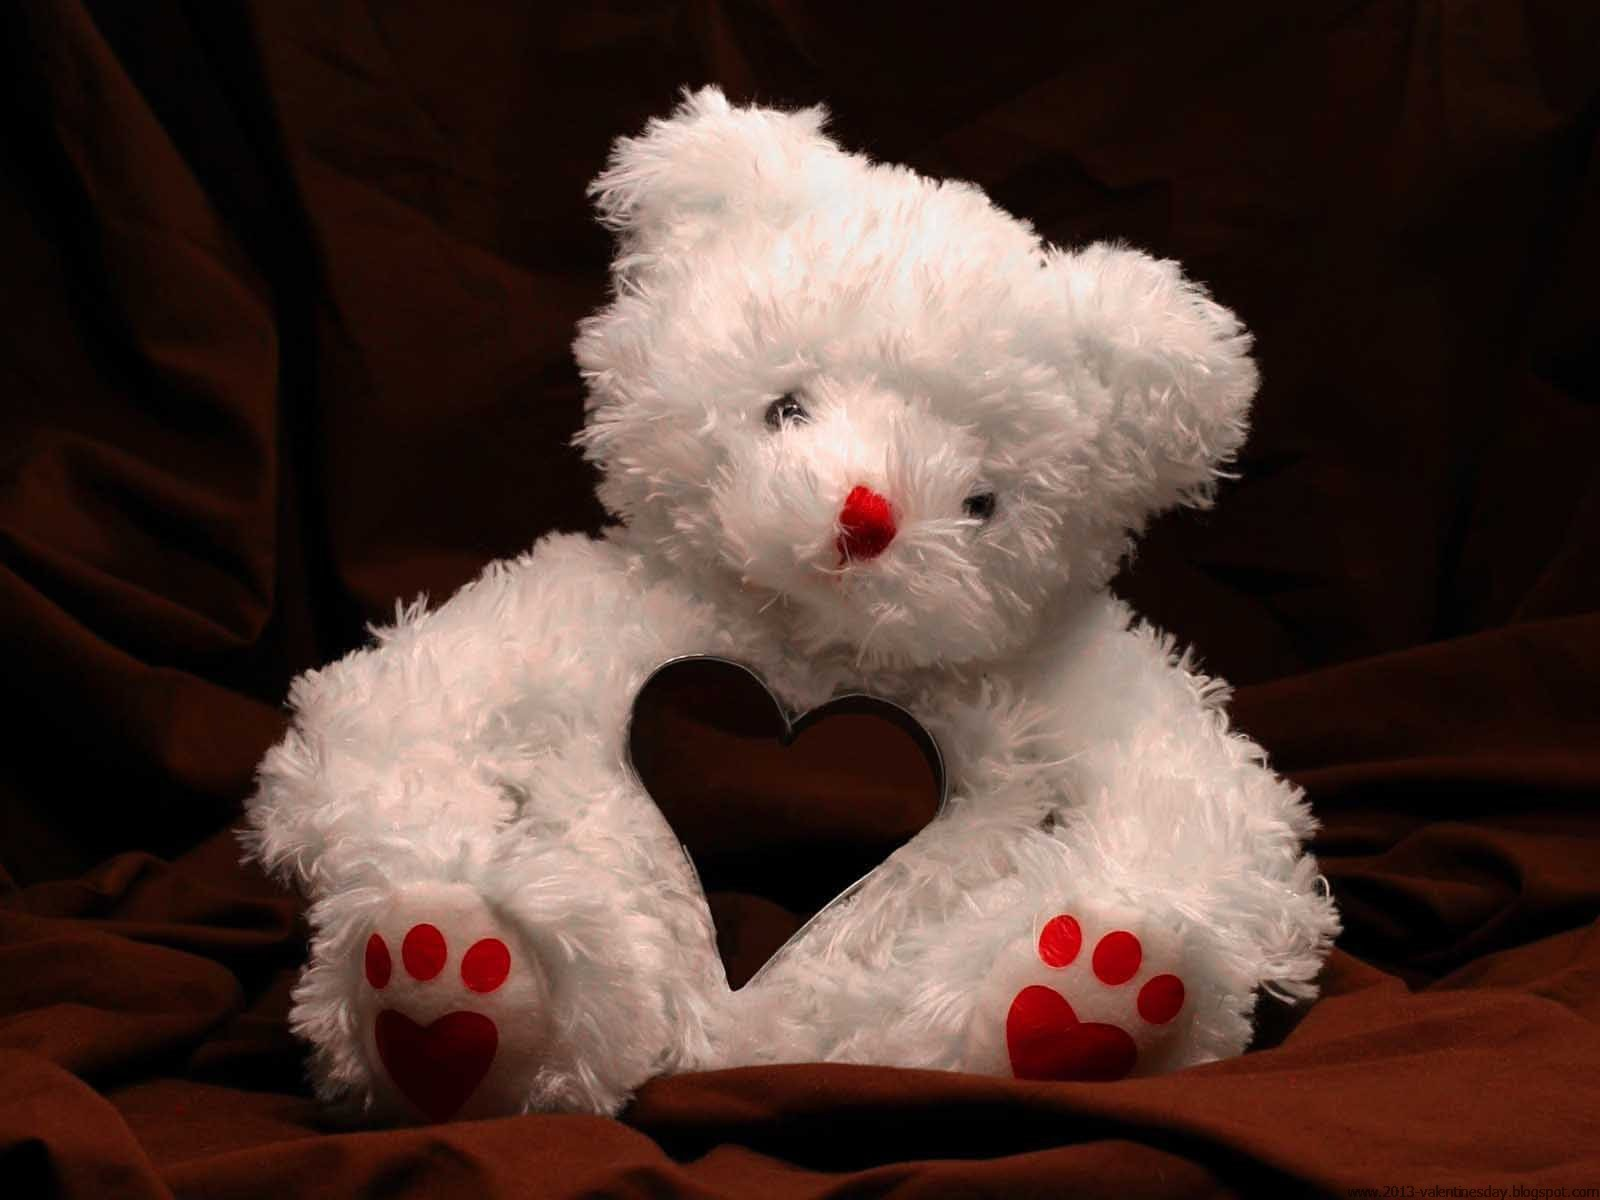 Teddy bear with love images - photo#13